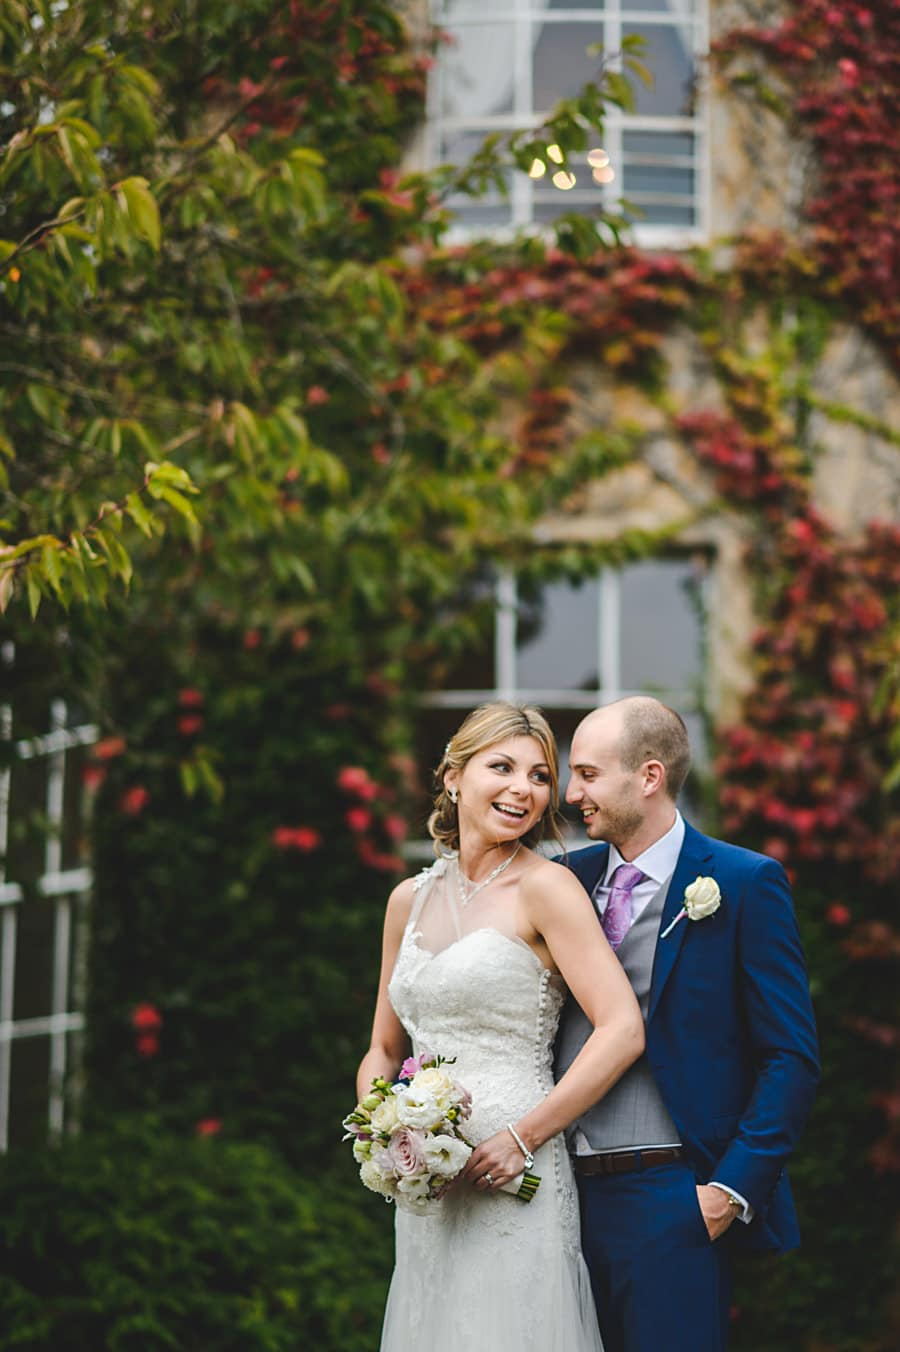 0795 - The Bishopstrow Hotel Wedding in Warminster, Wiltshire | Joanna + Rob